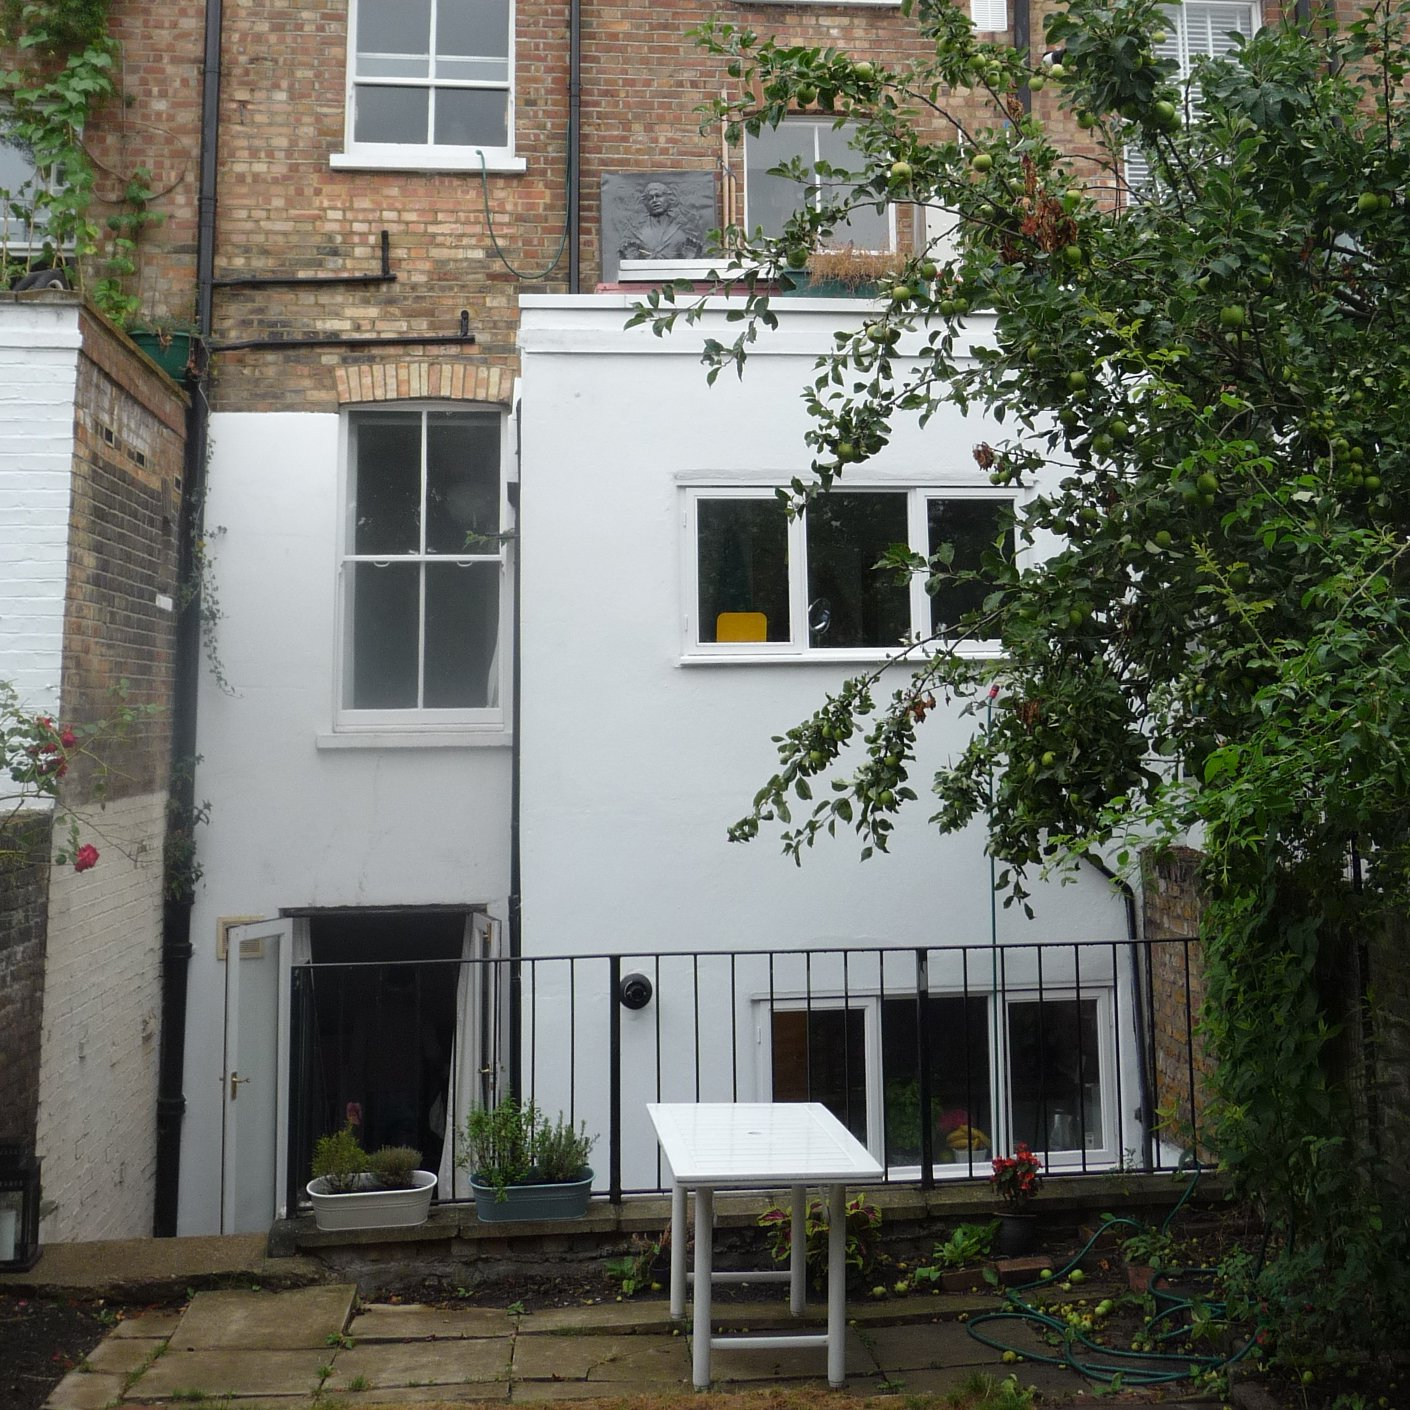 Chalk Farm Camden NW5 3QB Flat rear extension Rear elevation 200x200 Finchley Road, Camden NW3 | Flat extension